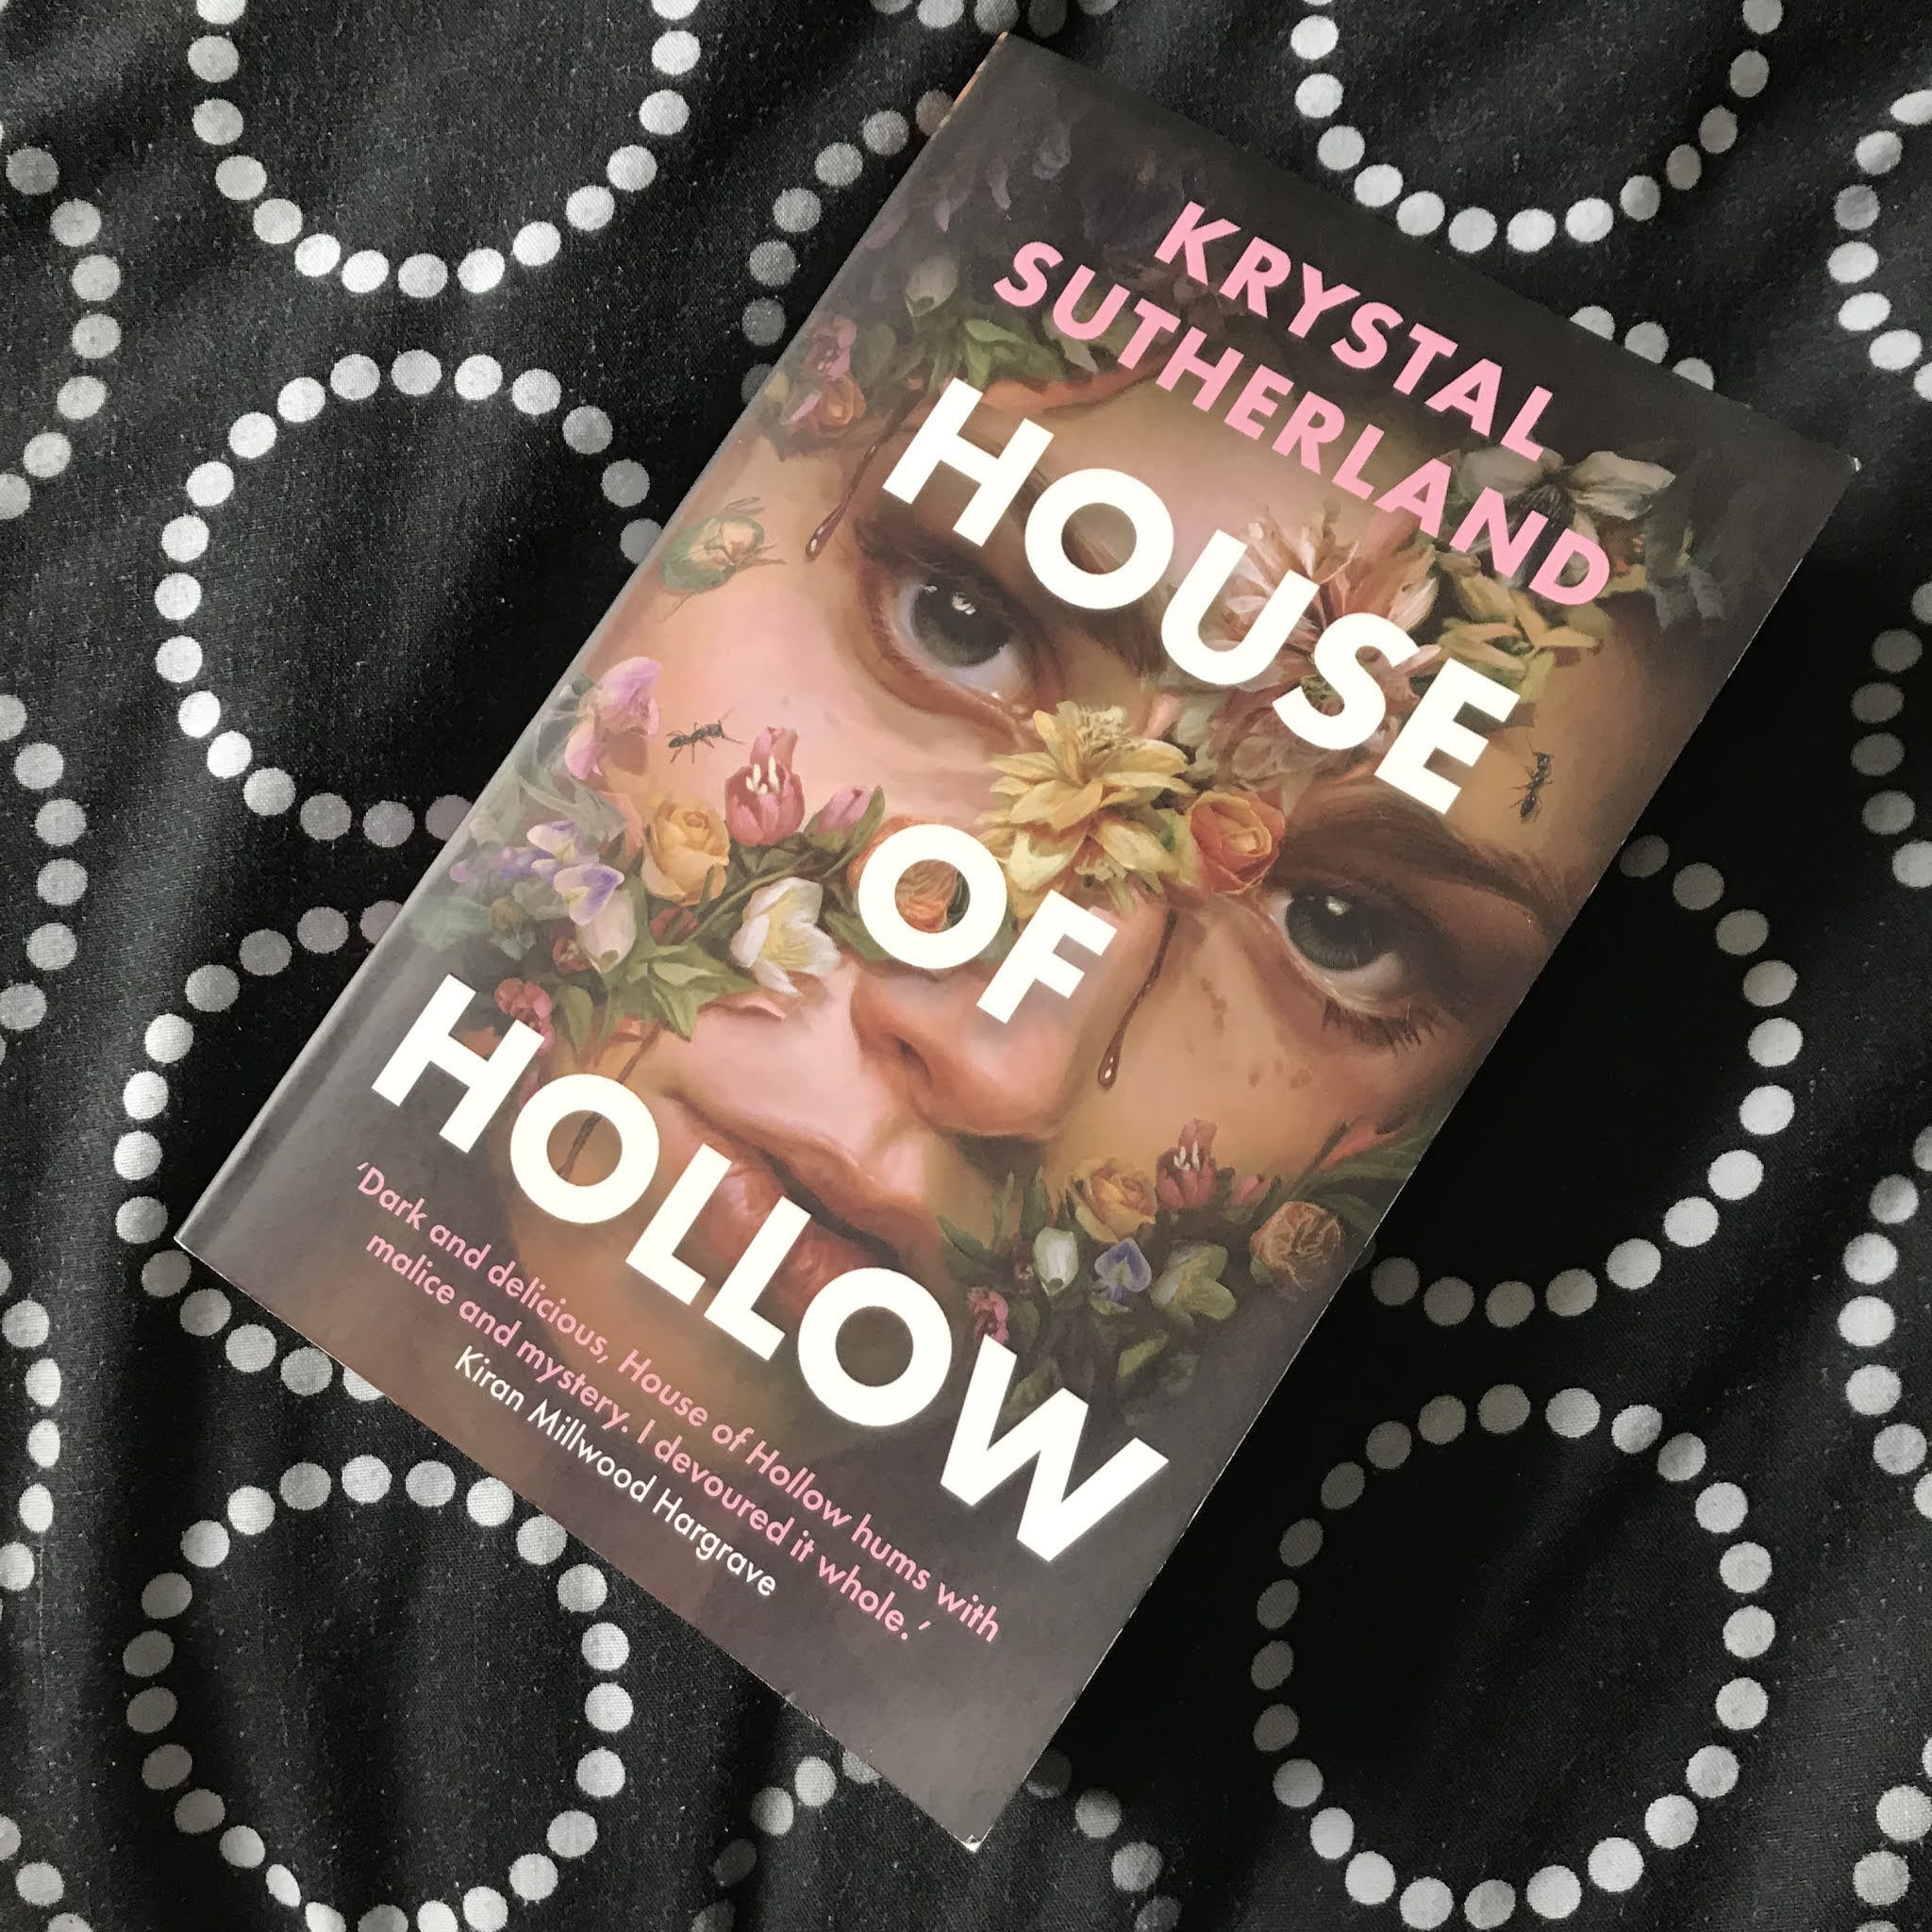 House of Hollow by Krystal Sutherland